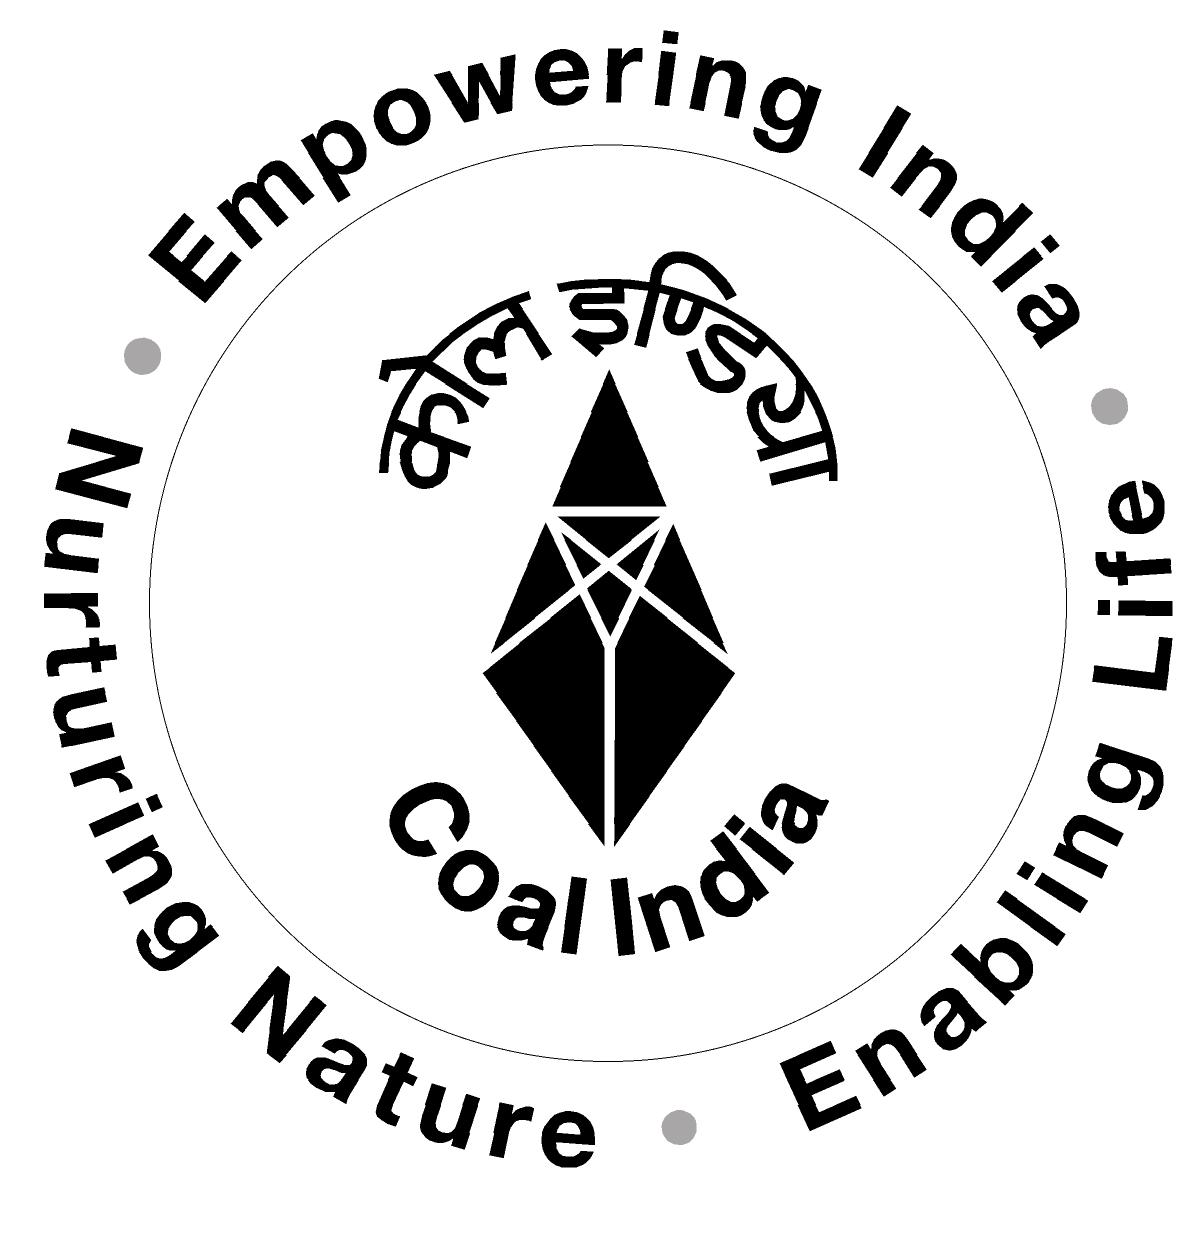 business environment of coal india ltd The ministry of ecology and environment  revamp of coal auction rules: business-friendly reforms  several board level posts to fall vacant at coal india ltd.